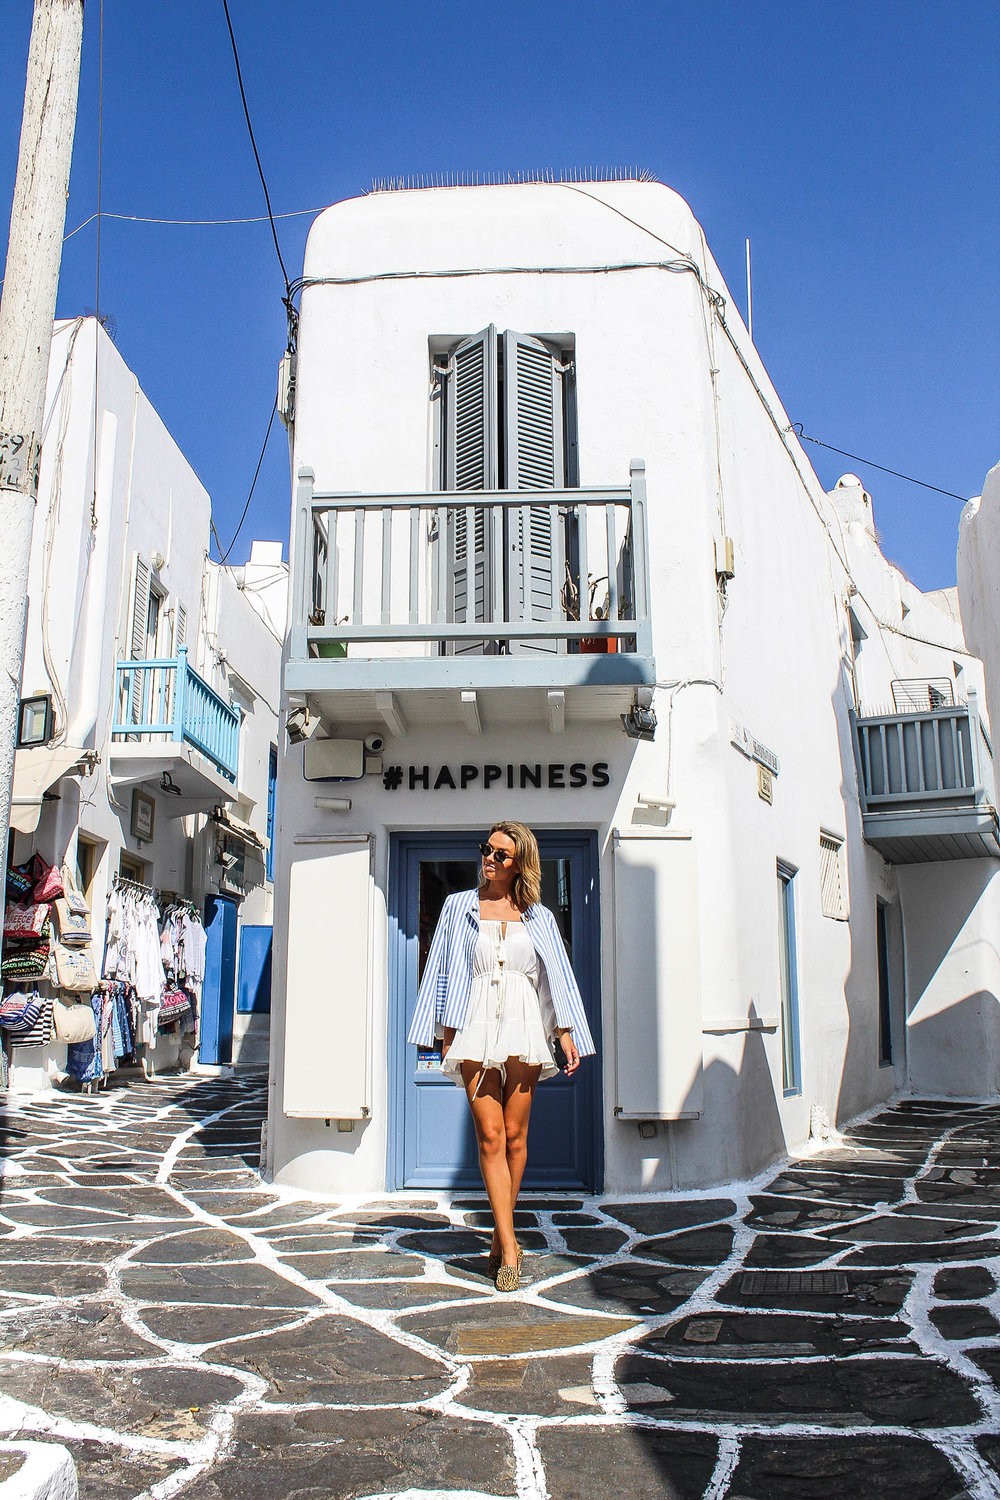 Mykonos Happiness.jpg